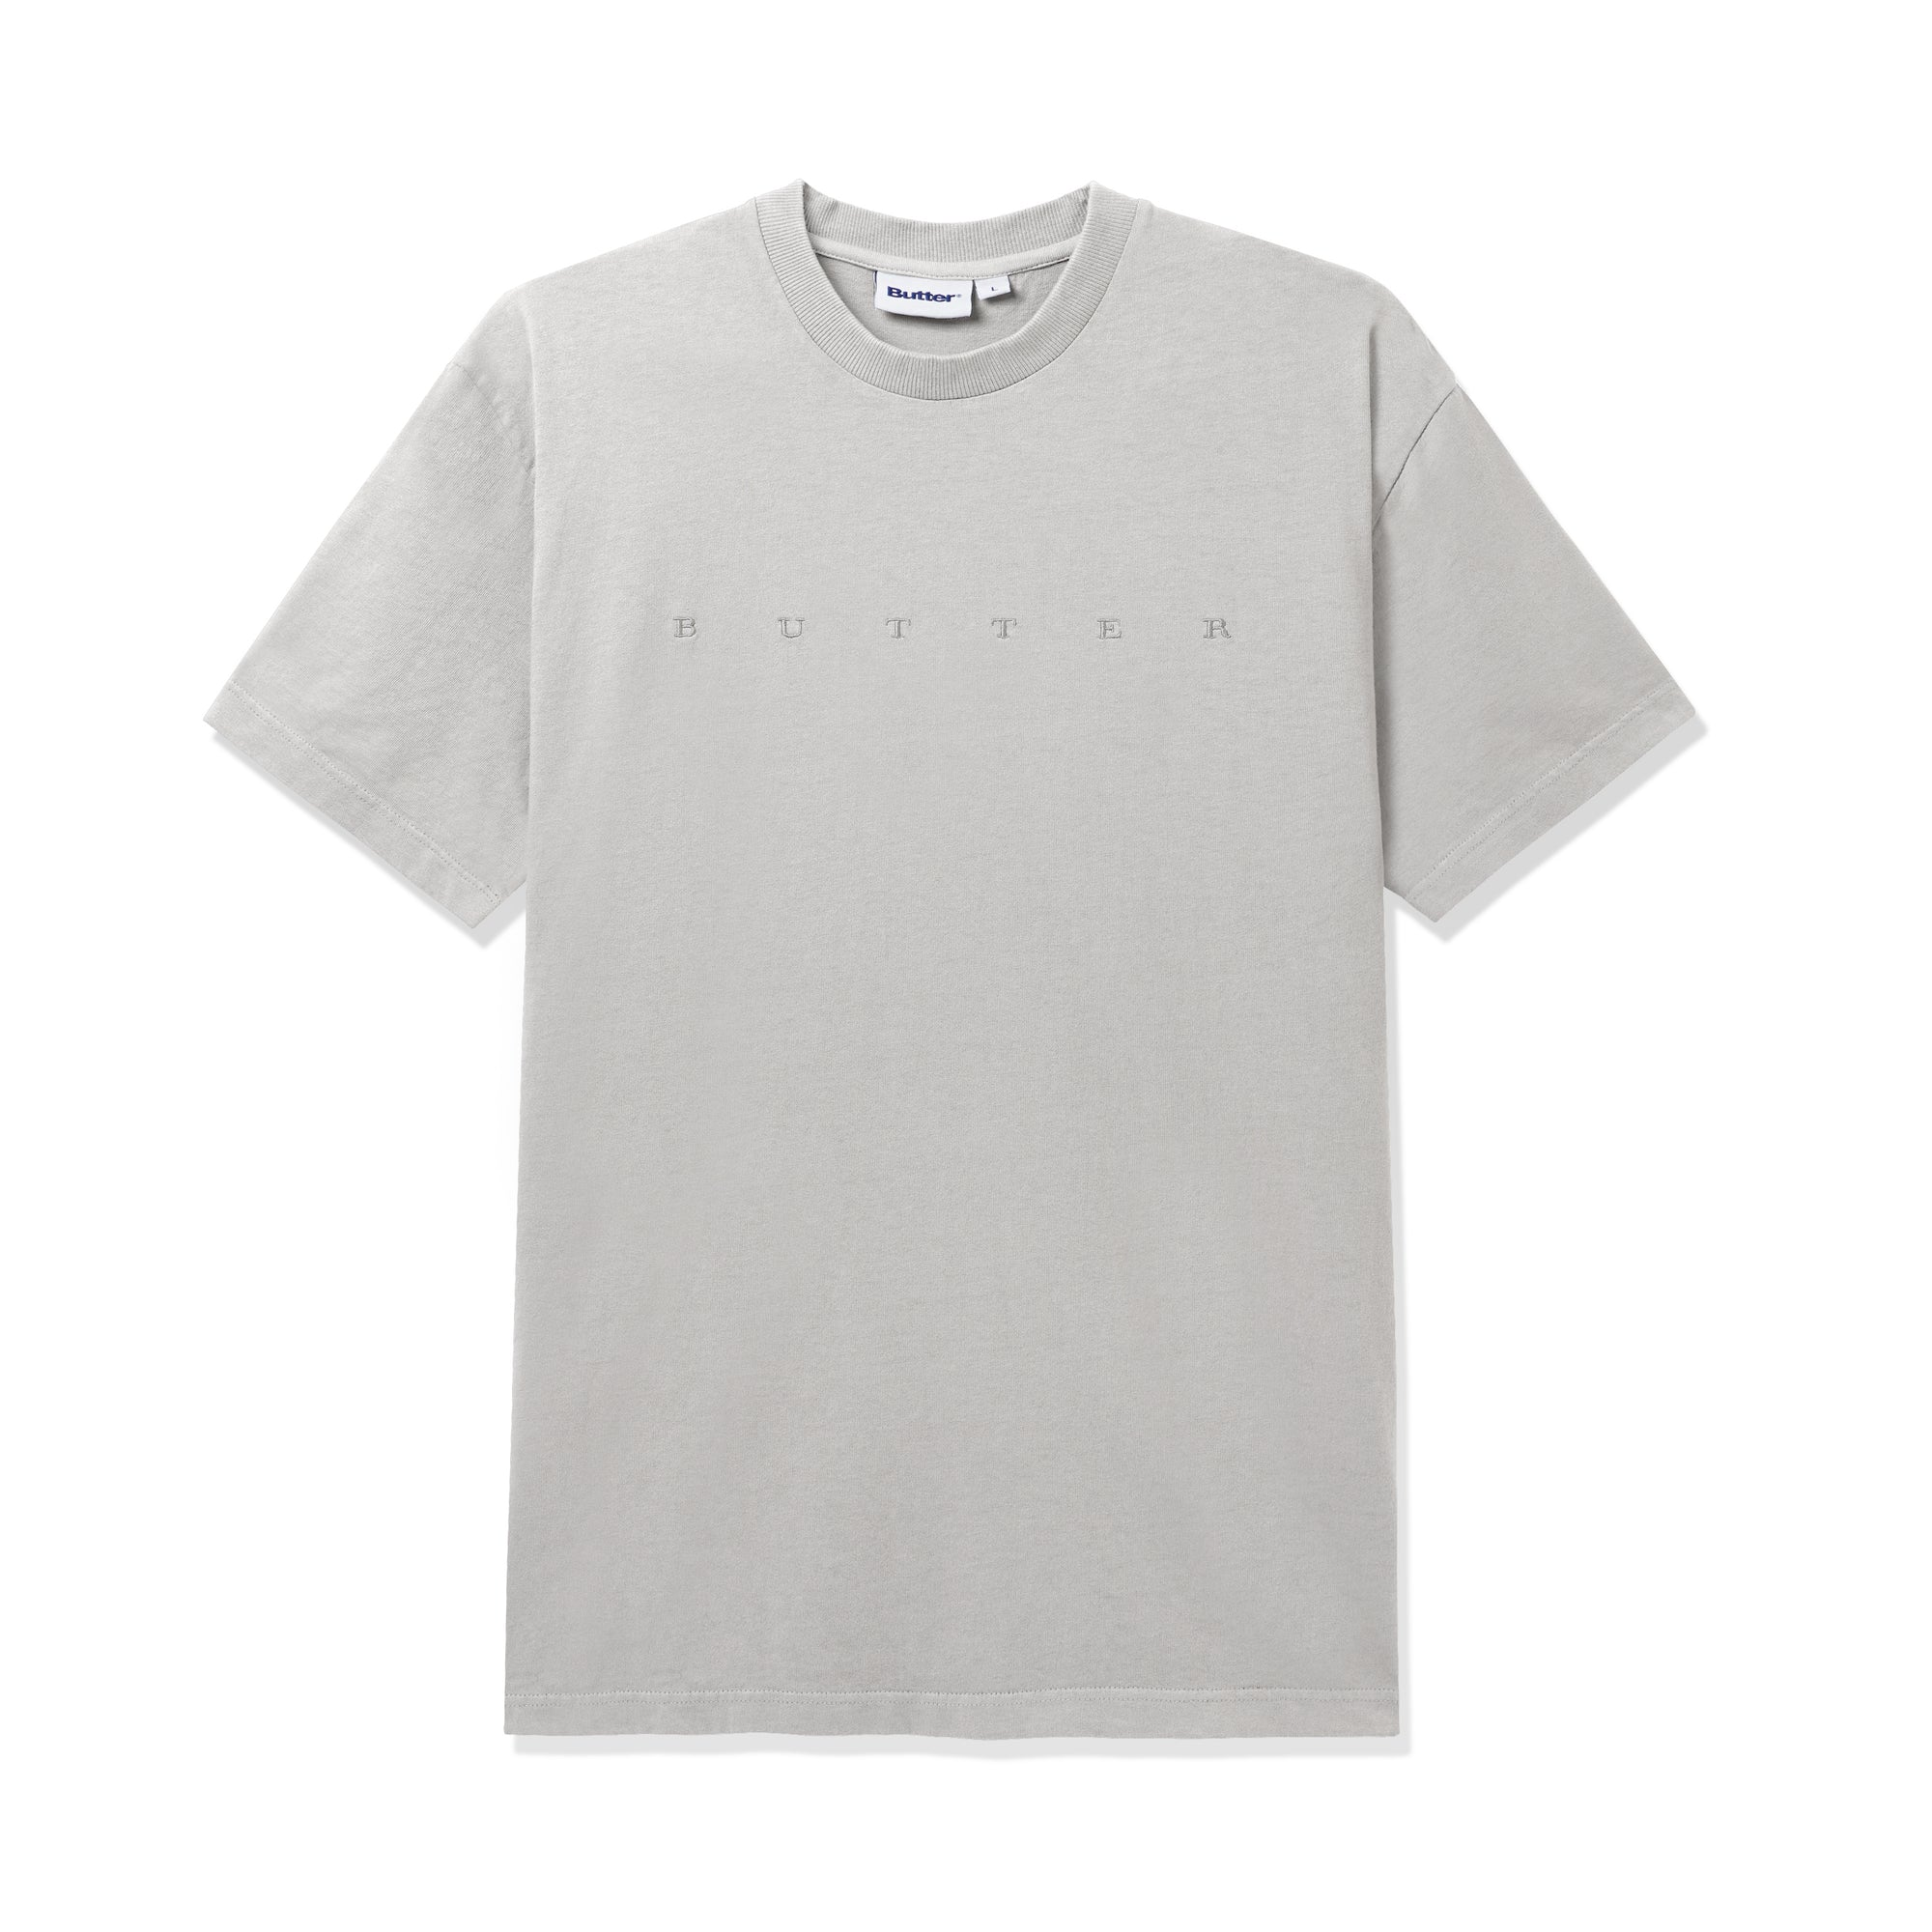 Butter Goods Hampshire Pigment Tee Product Photo #1